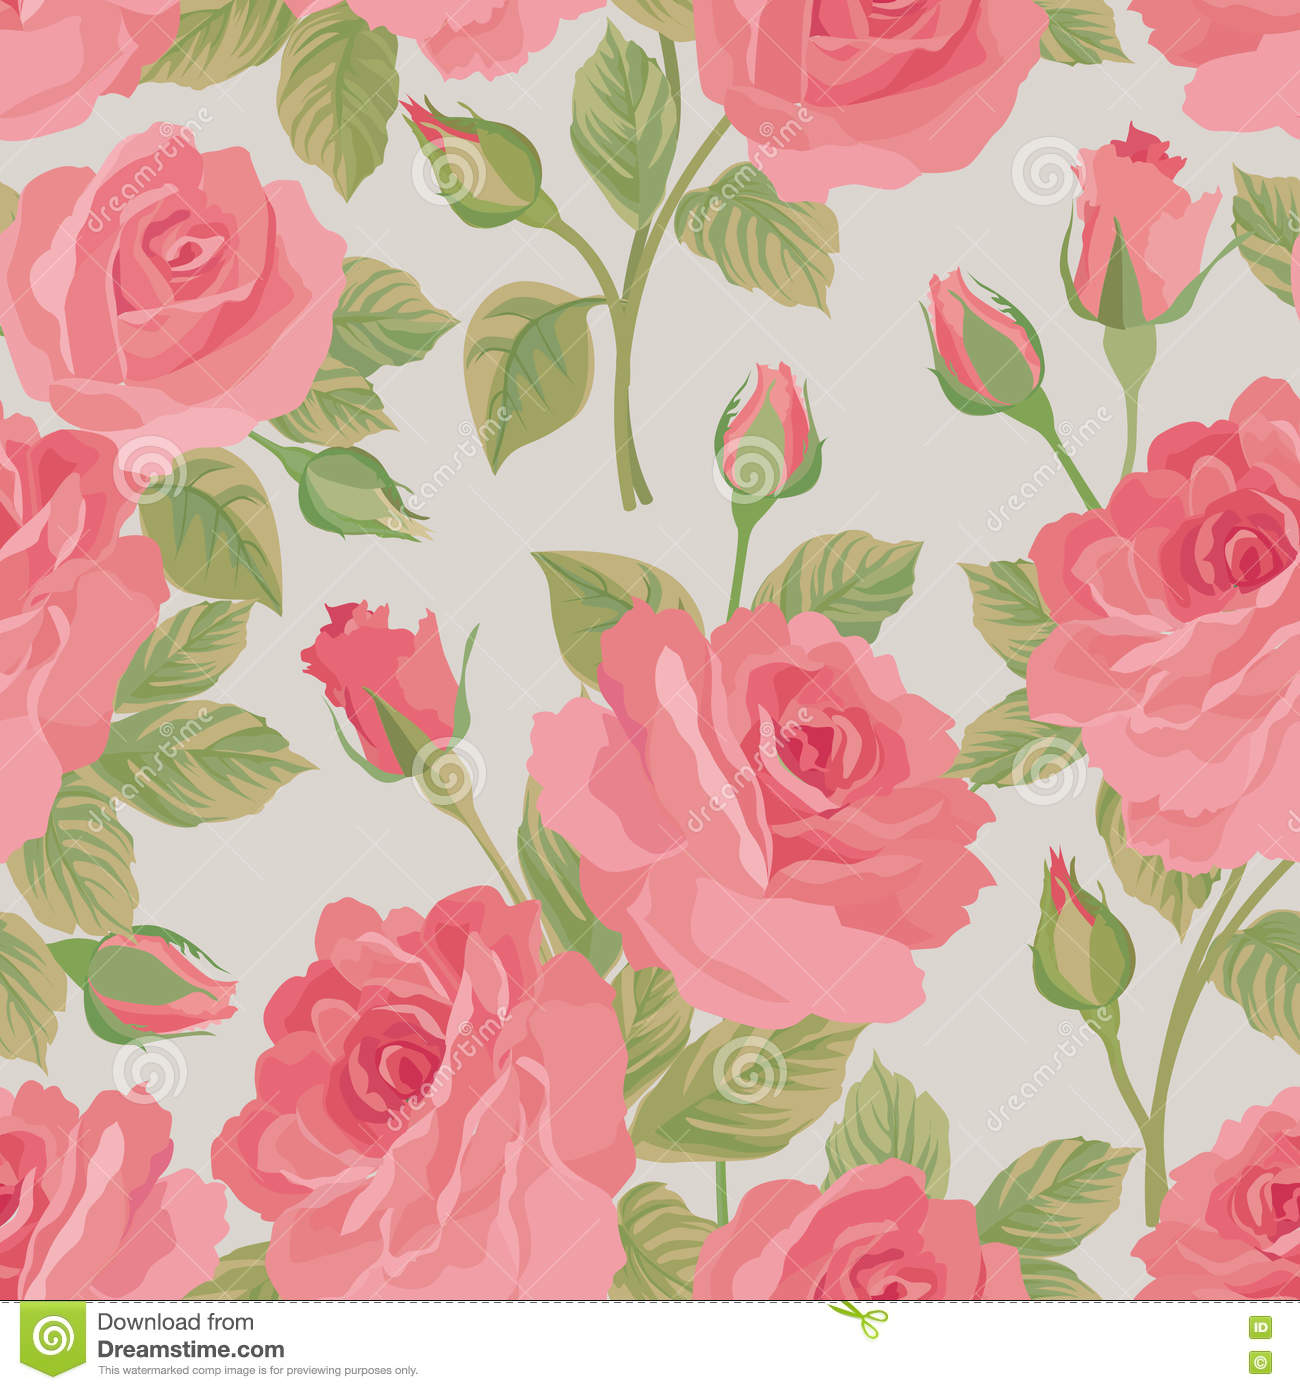 Floral bouquet seamless pattern. Flower posy background. Ornamental texture with flowers roses. Flourish tiled wallpaper